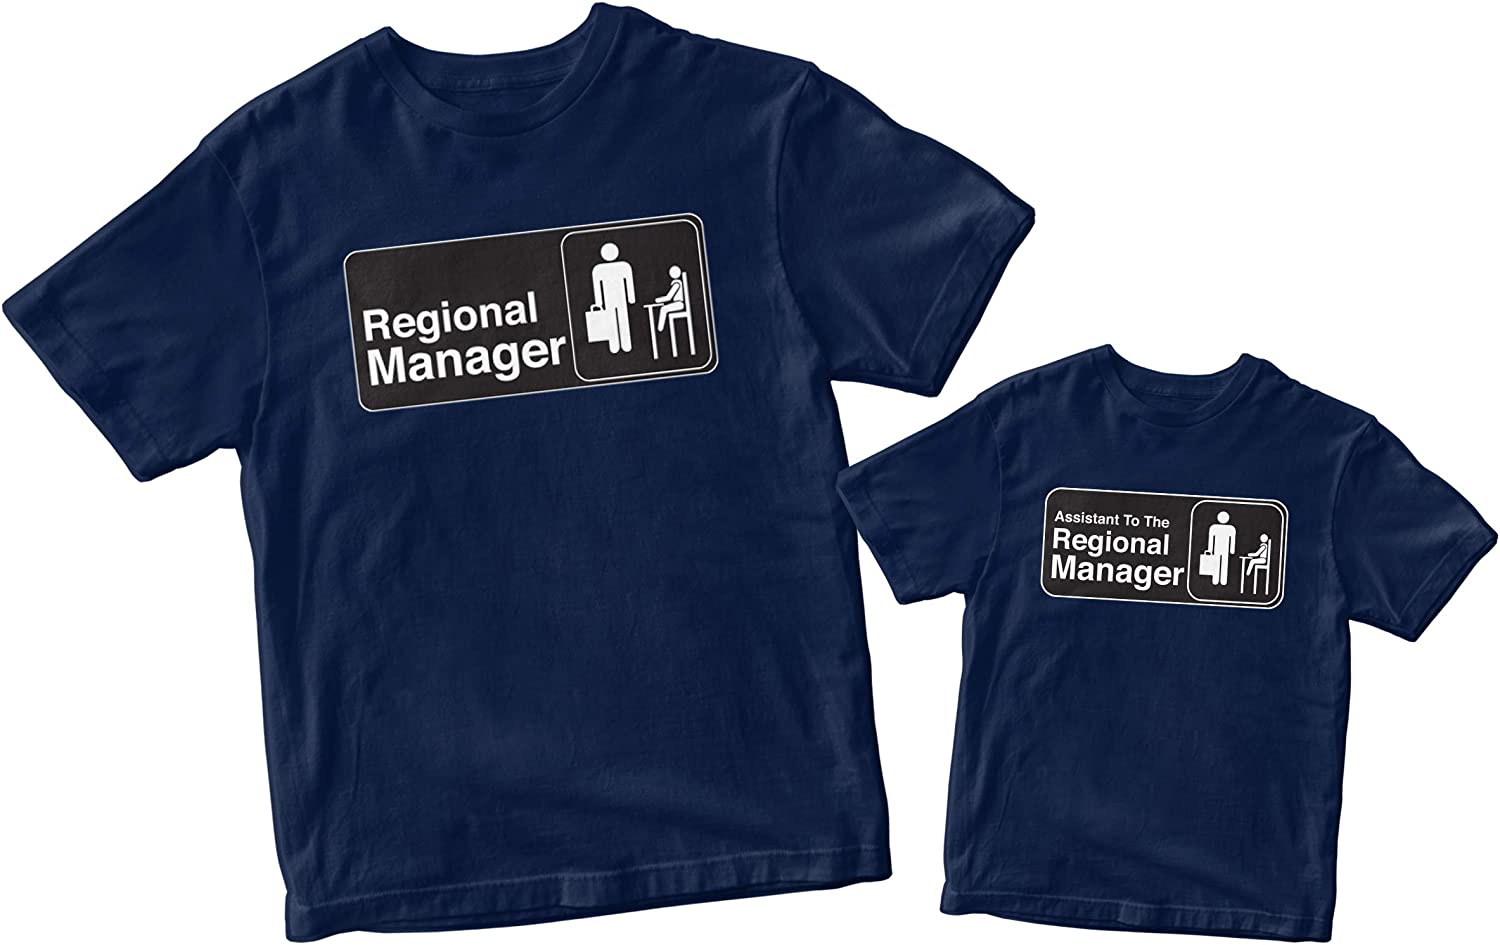 Regional Manager/Assistant to The Regional Manager Matching Family Shirts